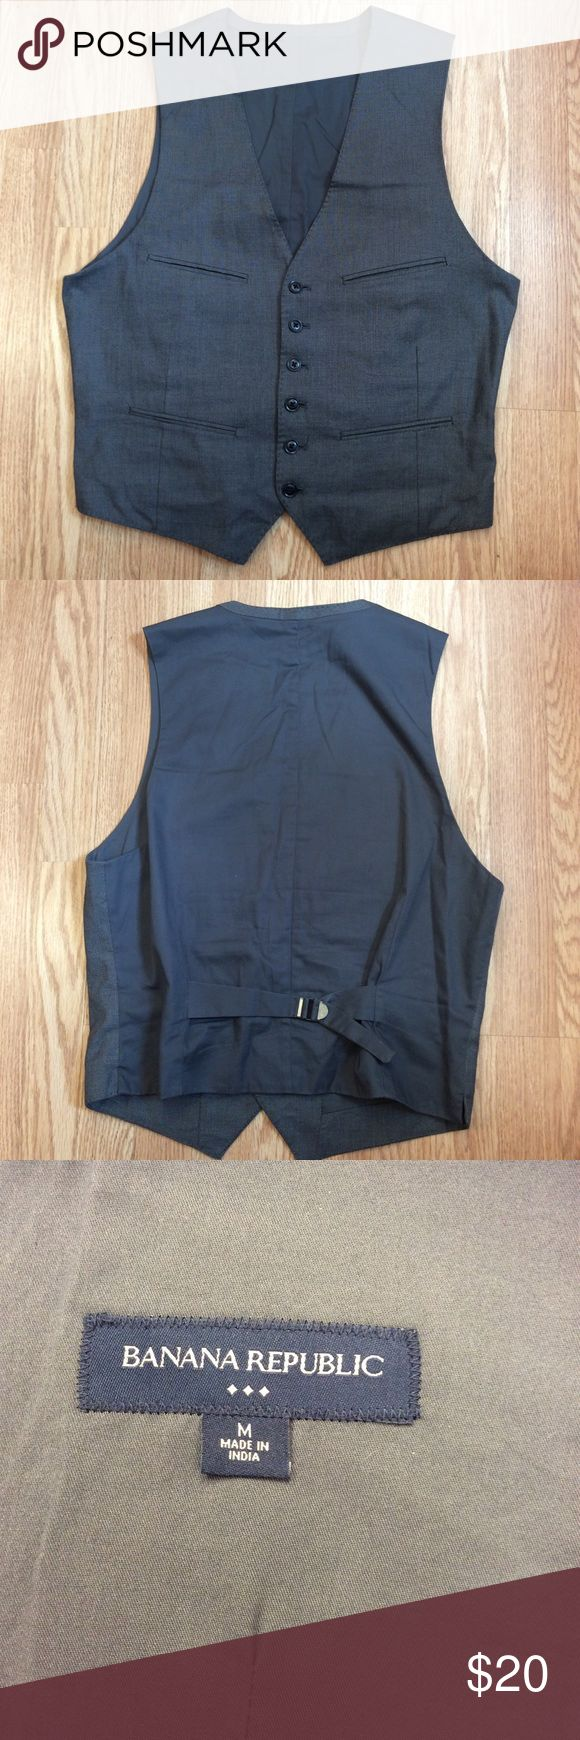 Banana Republic men's vest great for weddings Banana Republic men's vest size M, great wedding attire.  4 pockets on front, buttons up.  Good used condition.  Questions??? Please ask Banana Republic Jackets & Coats Vests